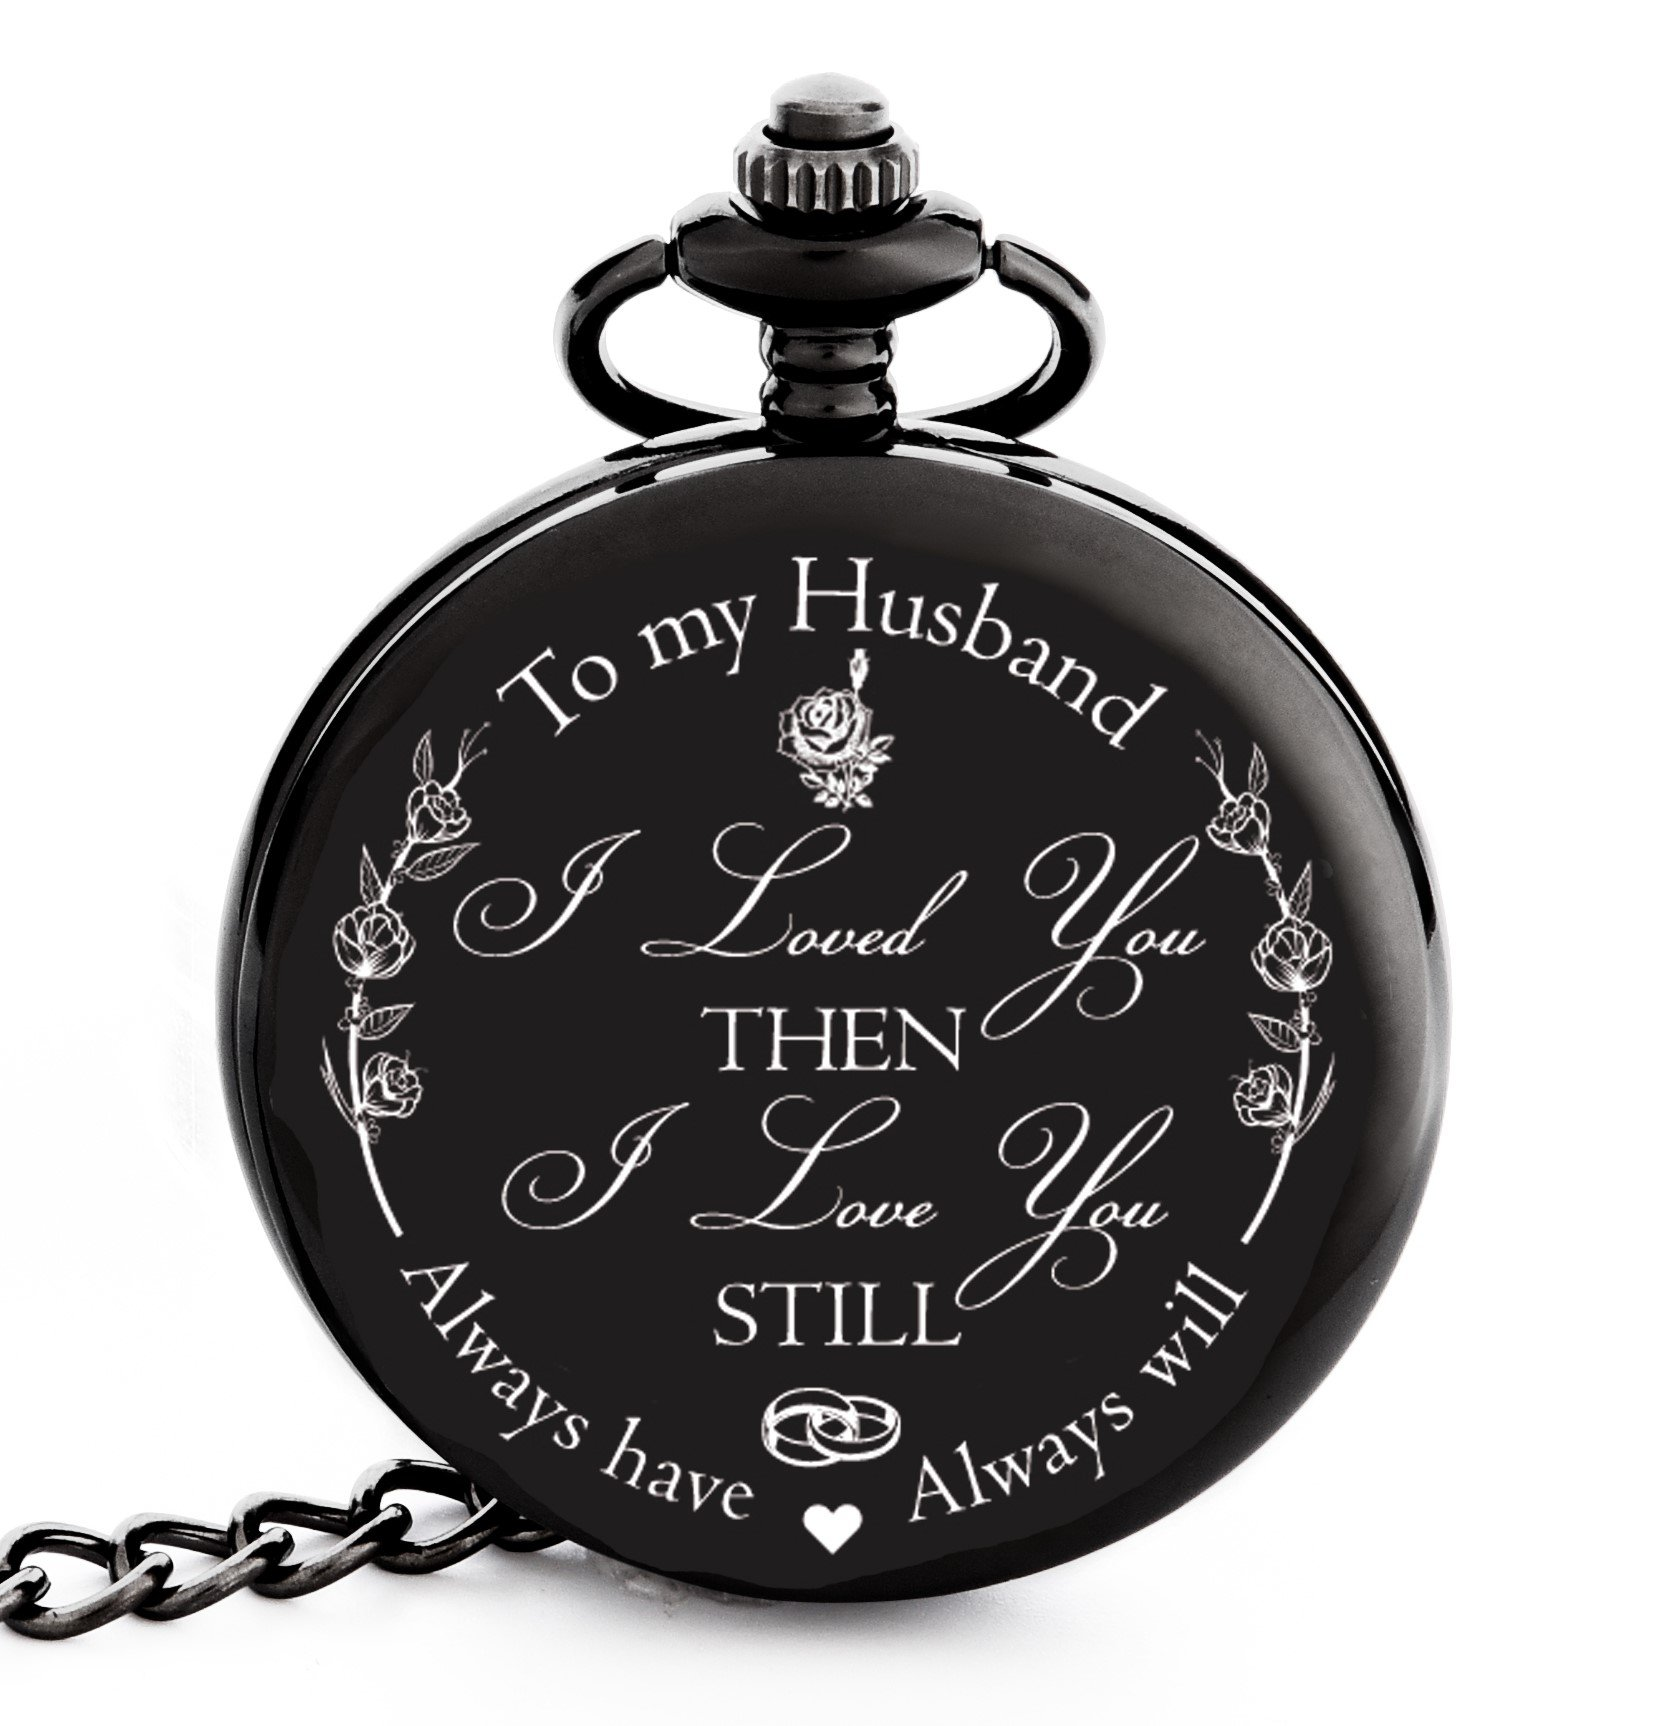 Christmas Gifts For Men South Africa: Pocket Watch Engraved To My Husband Anniversary Gift For